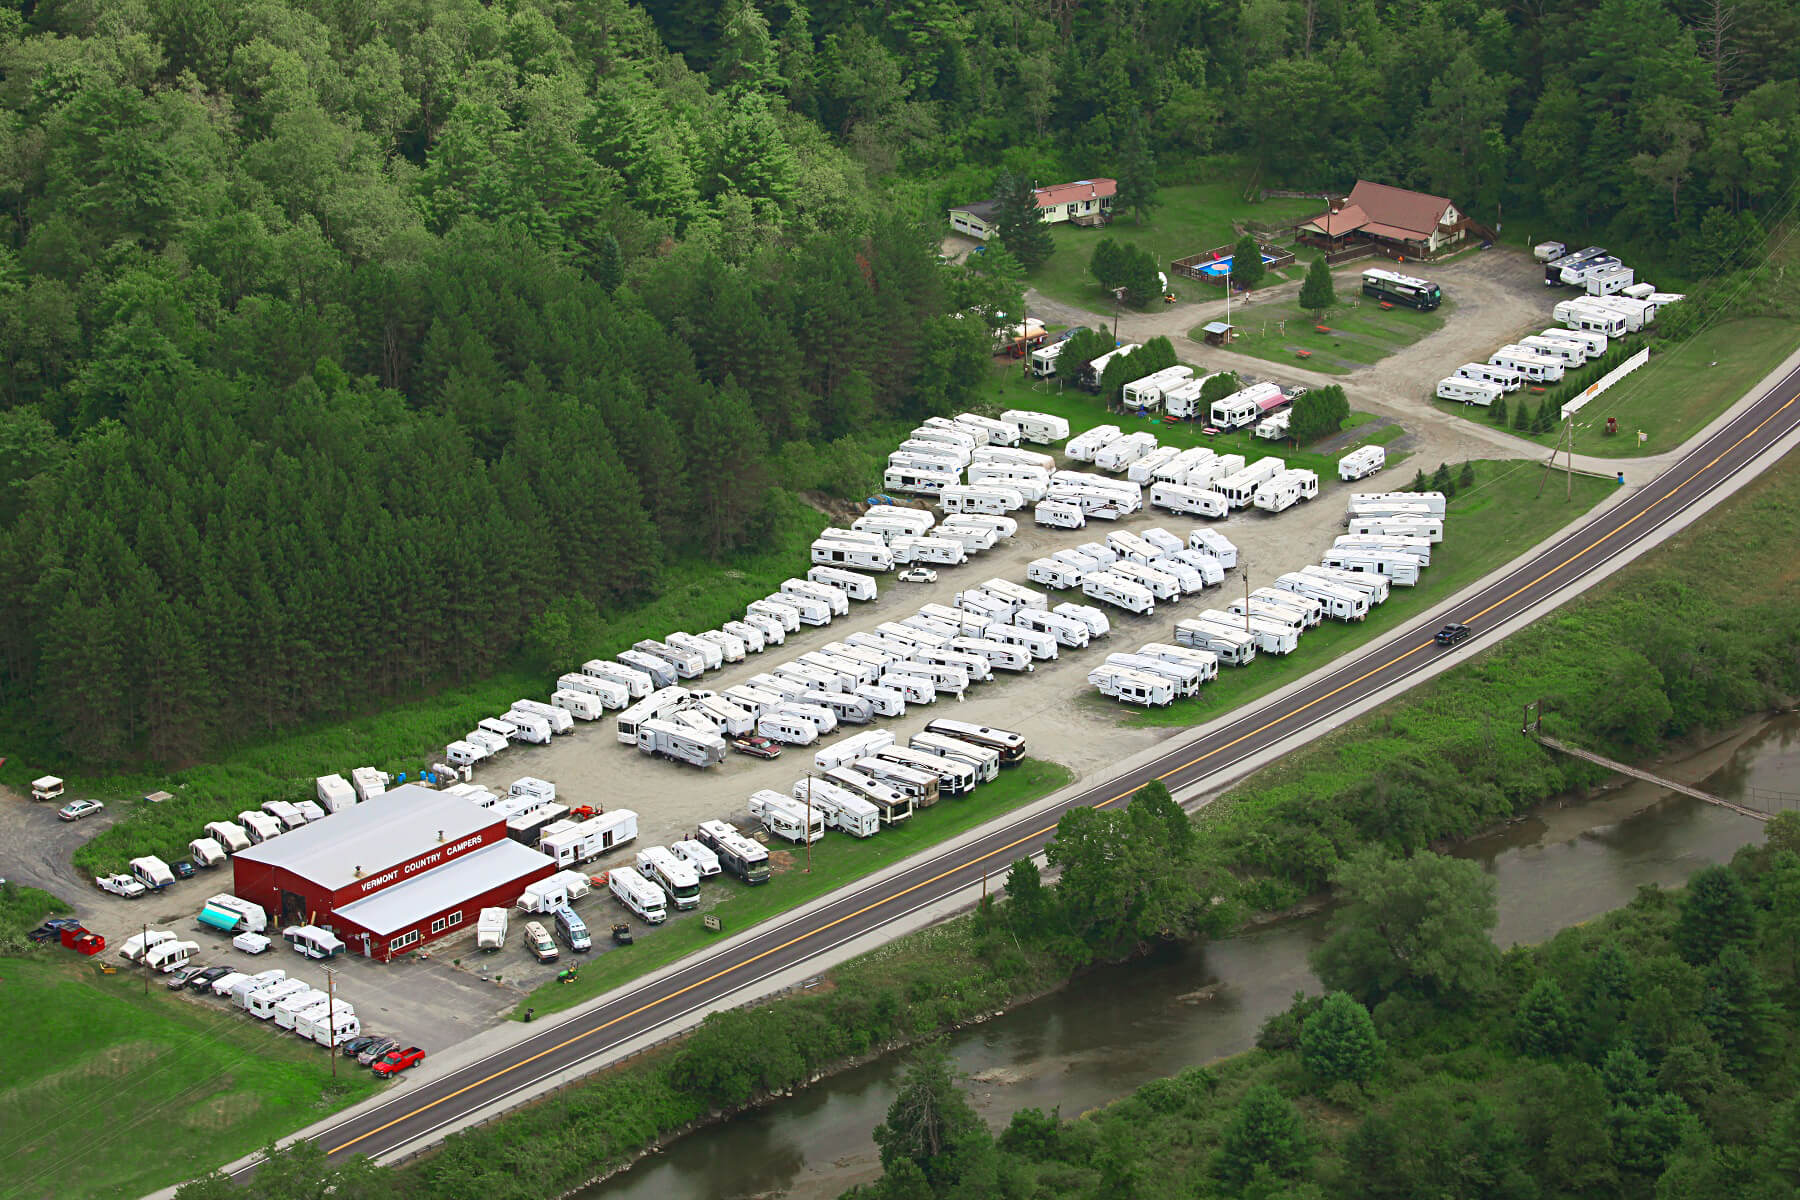 Vermont Country Campers aerial photo